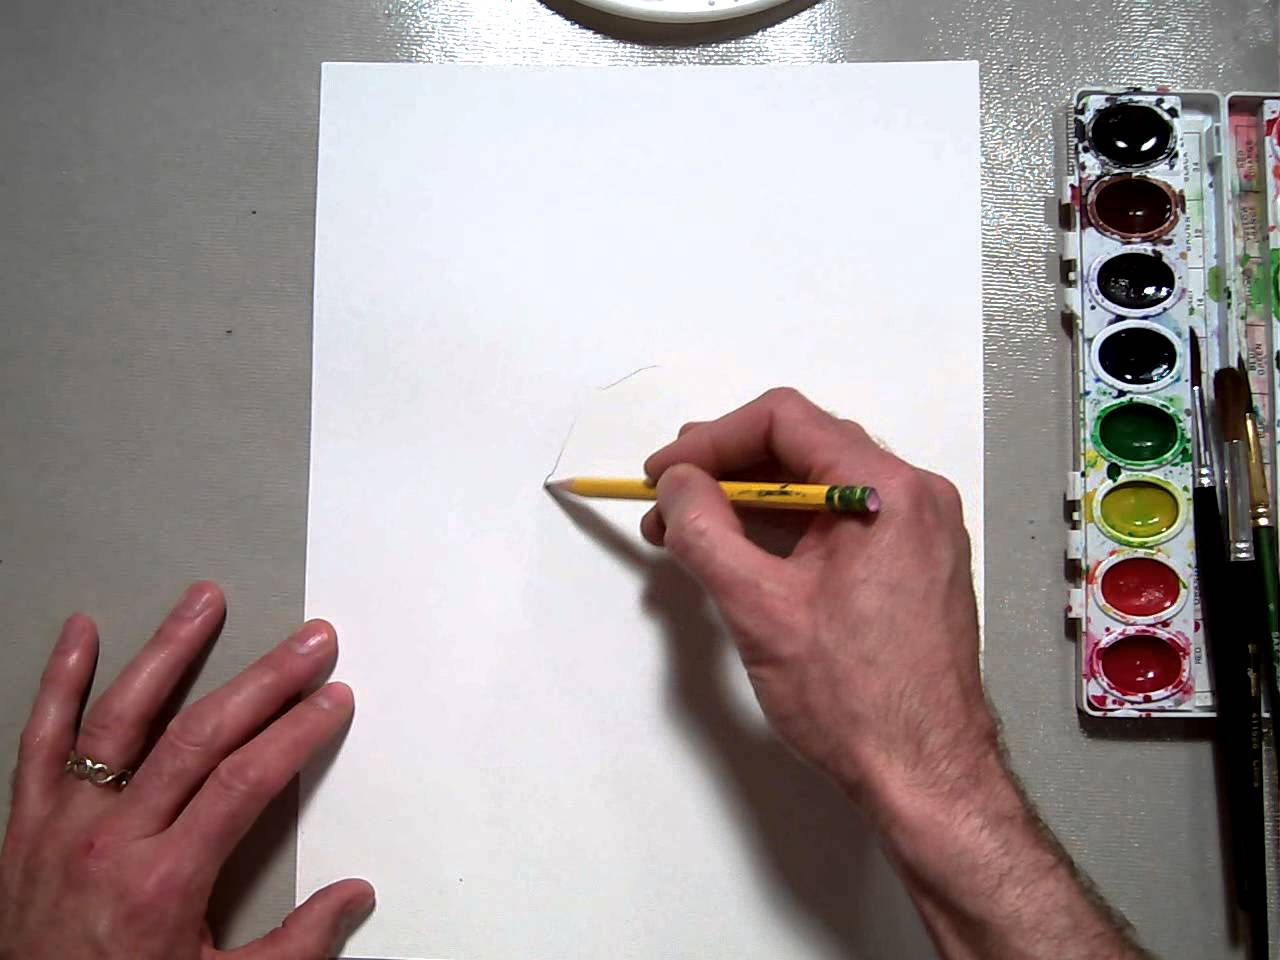 Drawn poppy real flower Poppy Drawing flowers YouTube Drawing